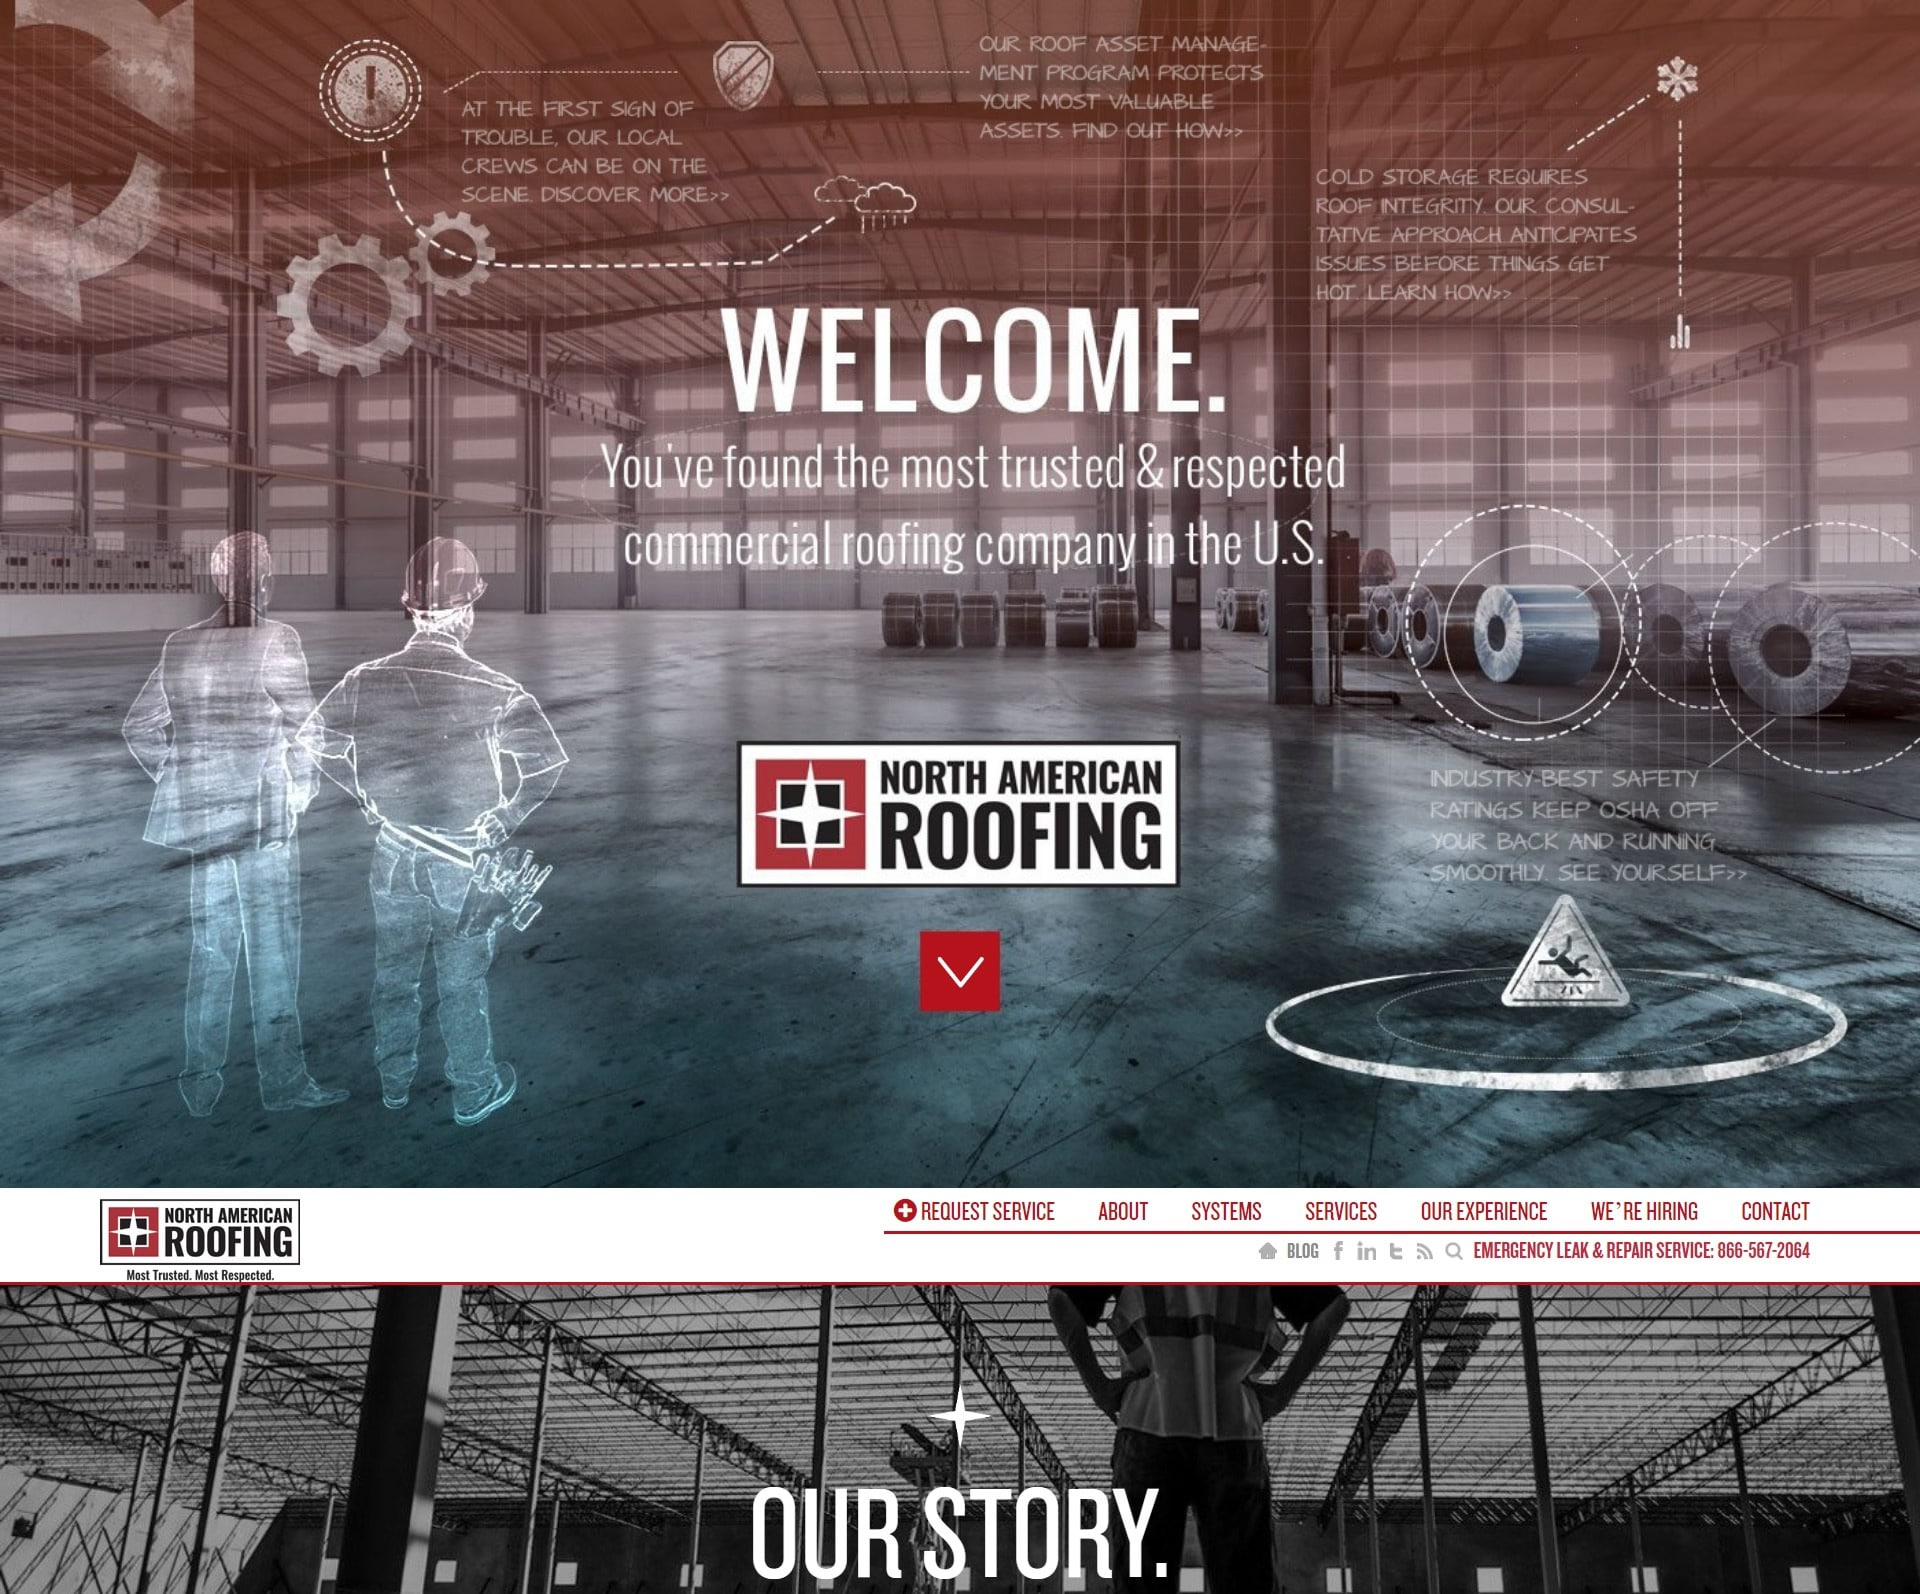 North American Roofing